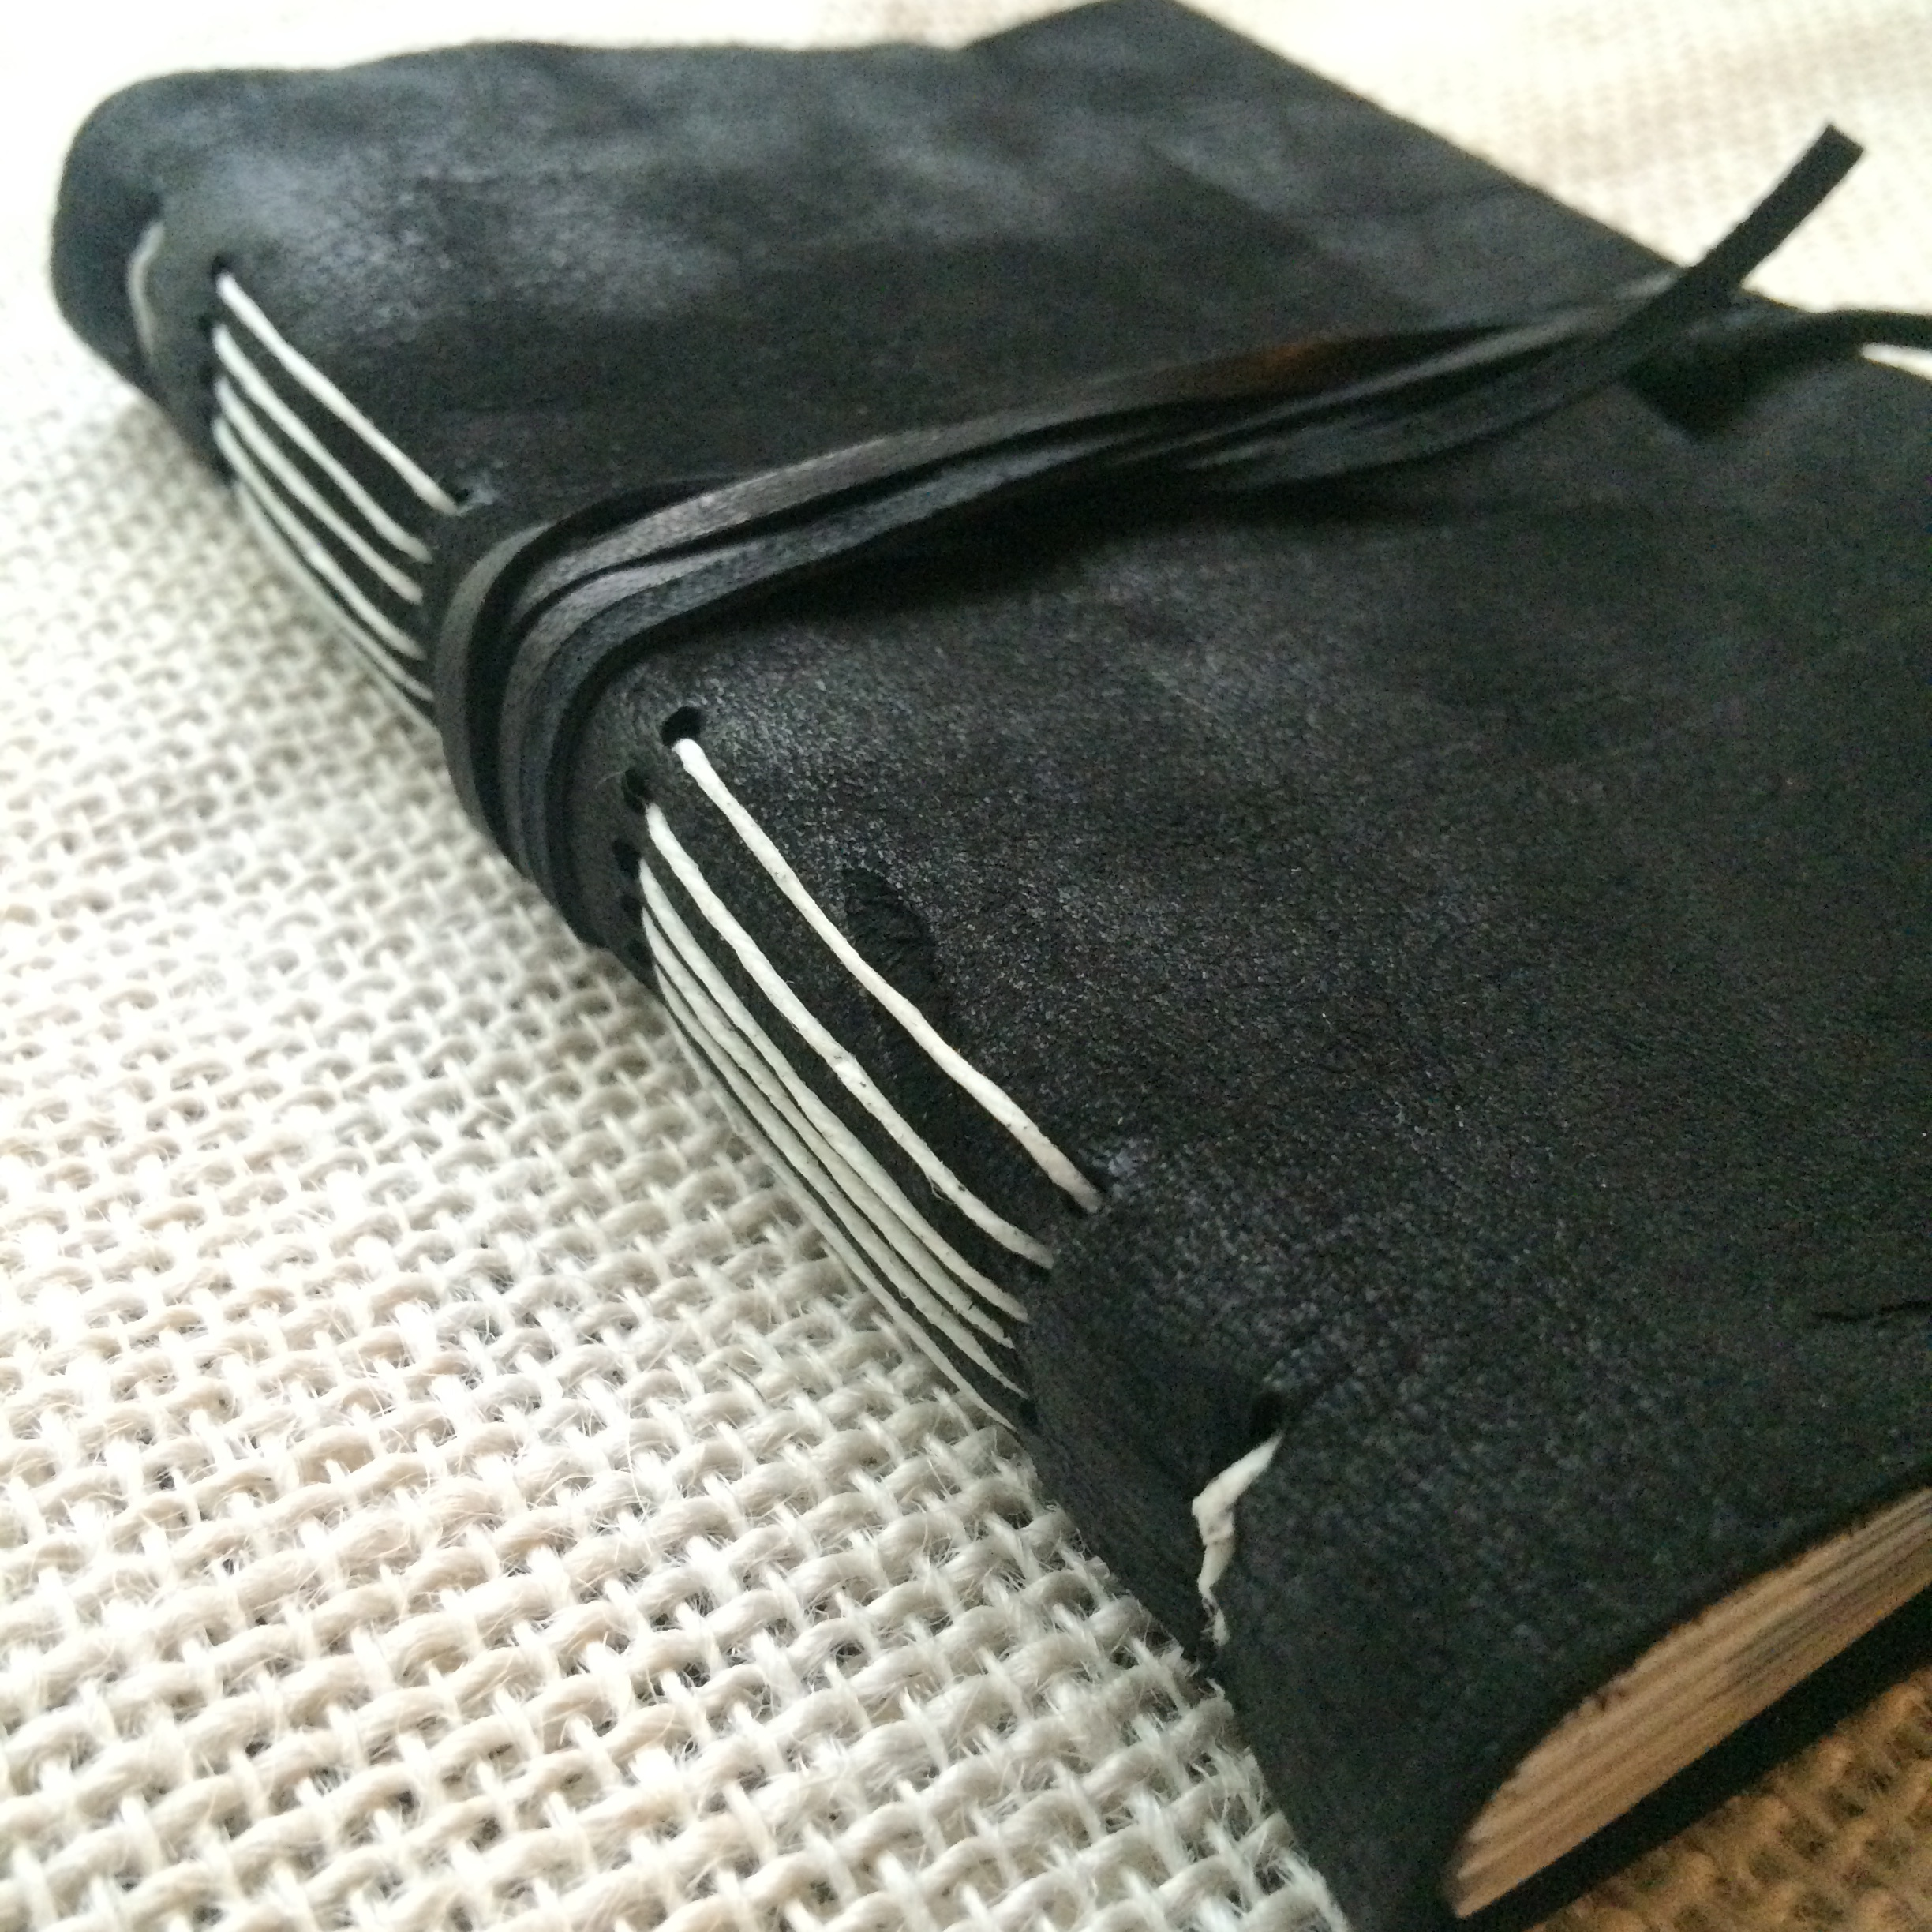 Soft light shows the velvety texture of this black deerskin